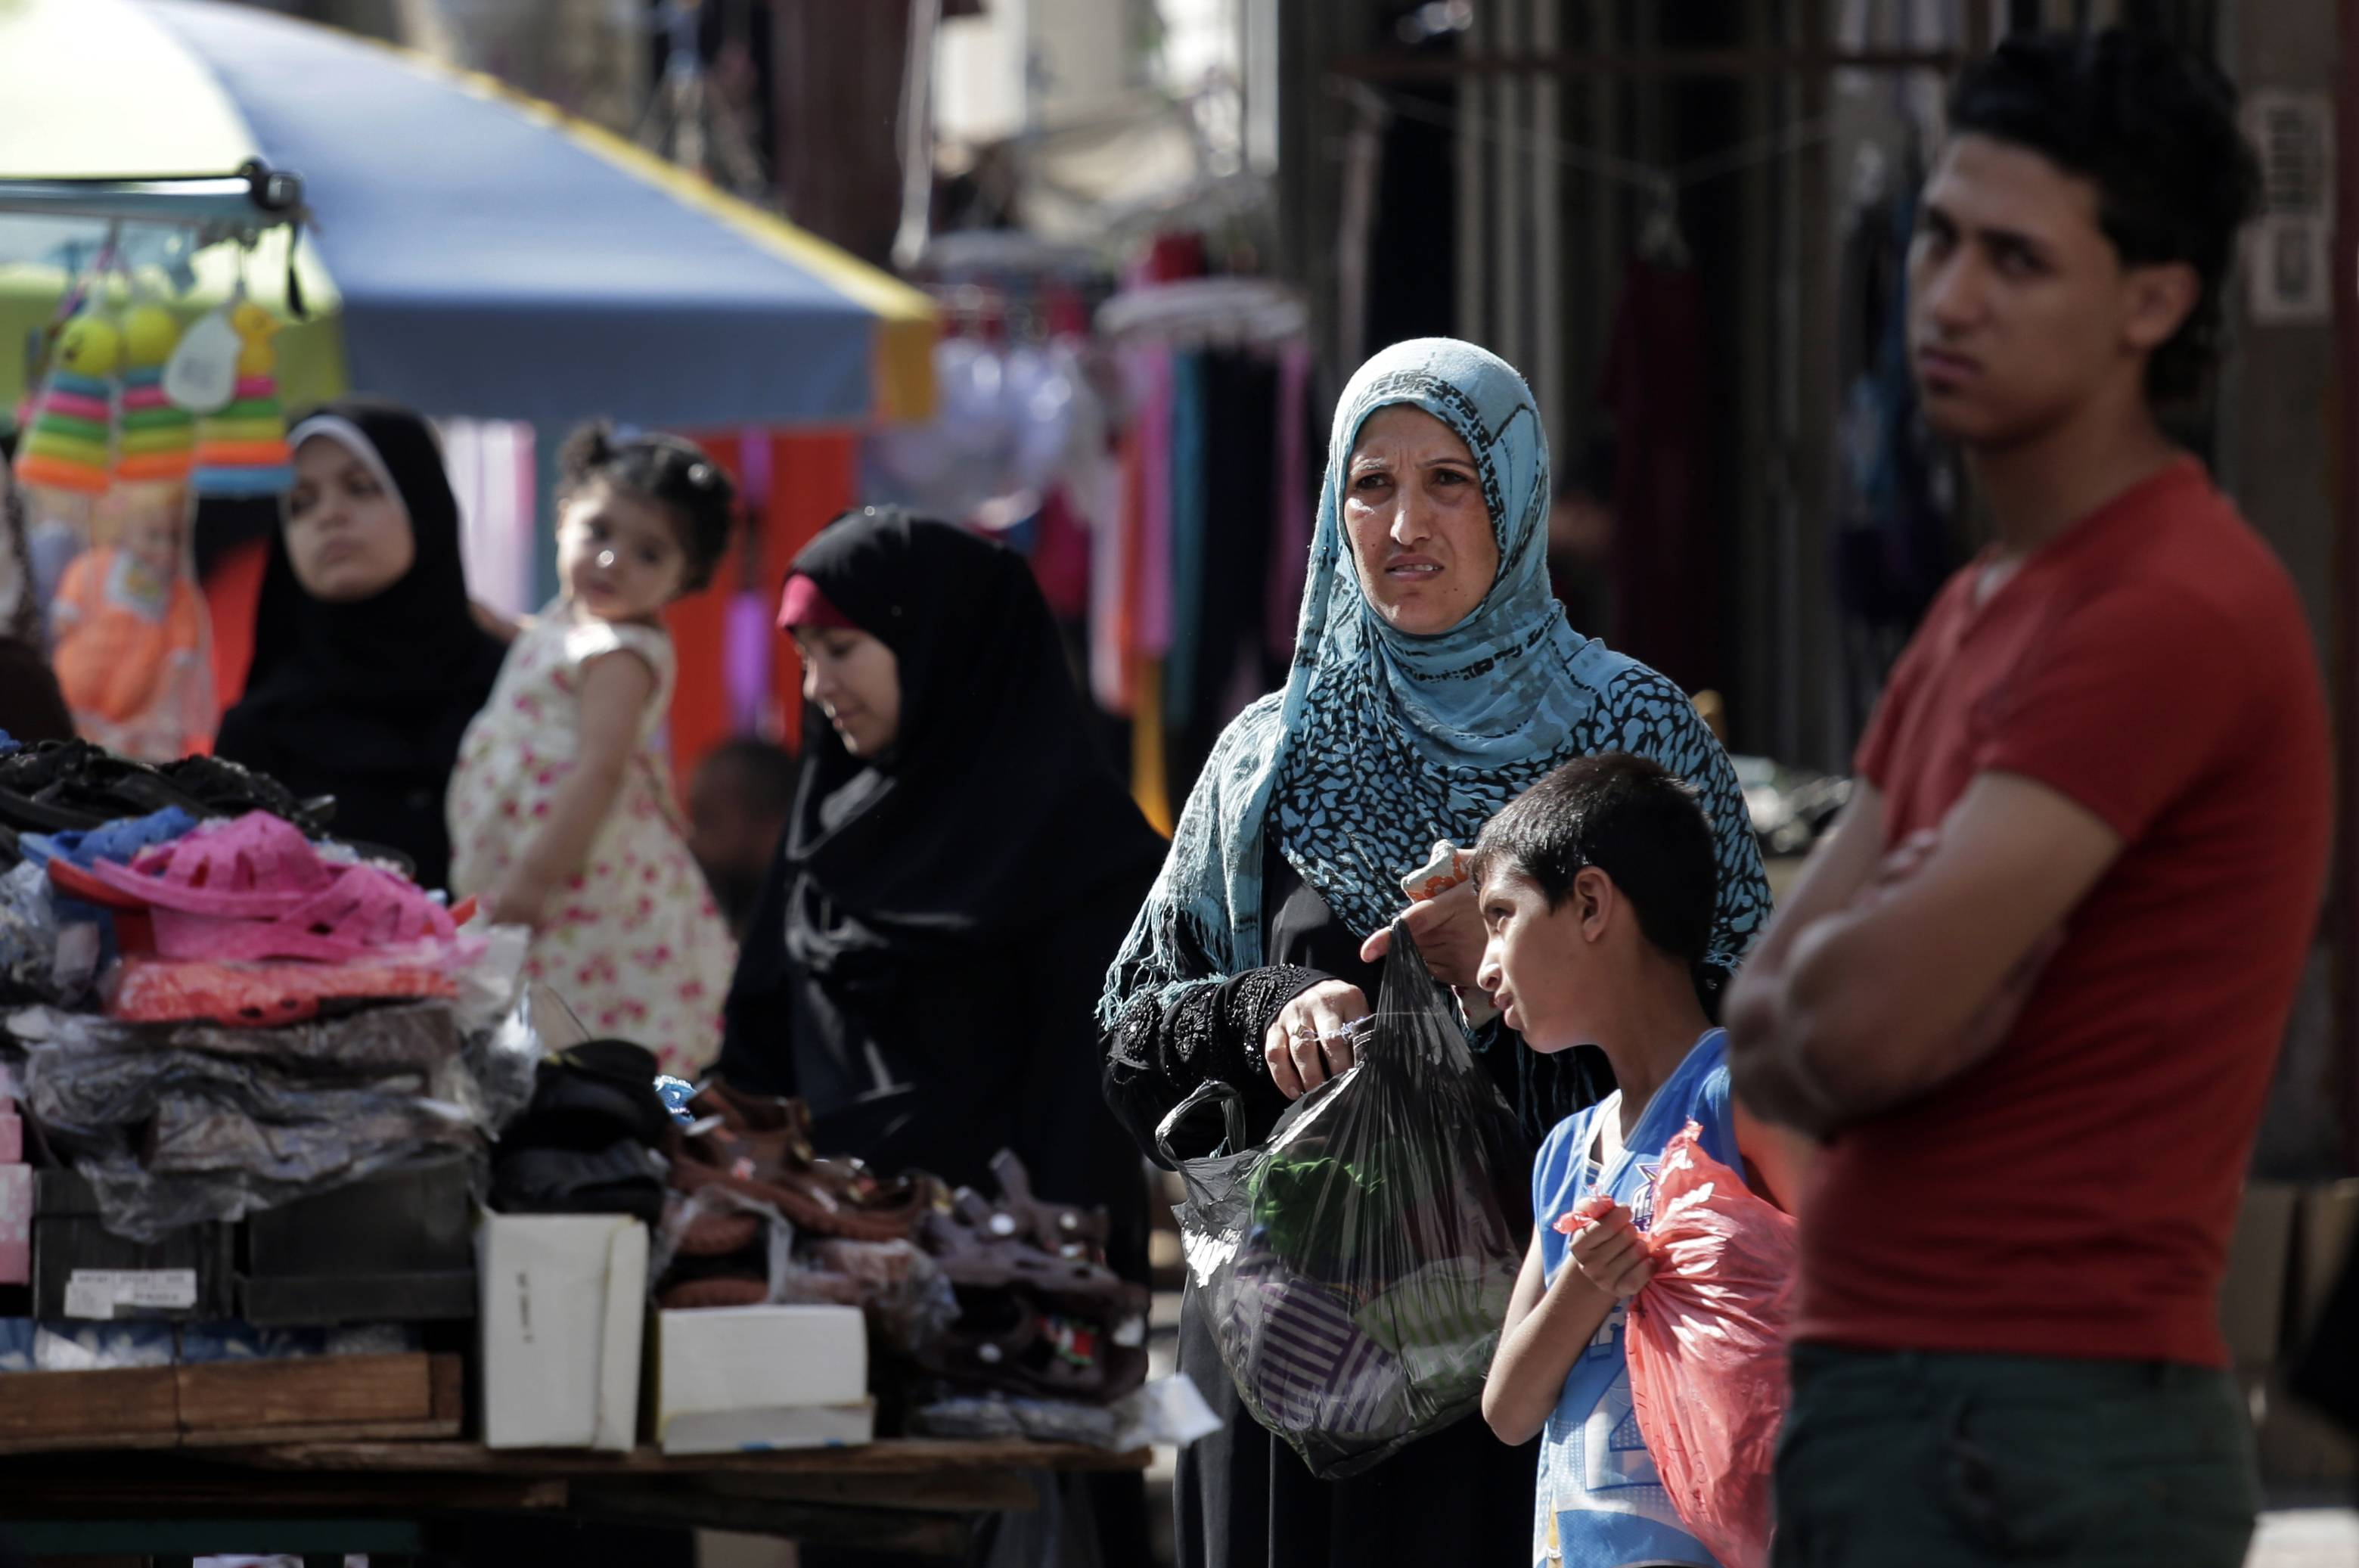 Palestinians shop Wednesday at a market in Gaza City. A cease-fire between Israel and Hamas that ended a month of fighting is holding for a second day, ahead of negotiations in Cairo on a long-term truce and a broader deal for the war-ravaged Gaza Strip.